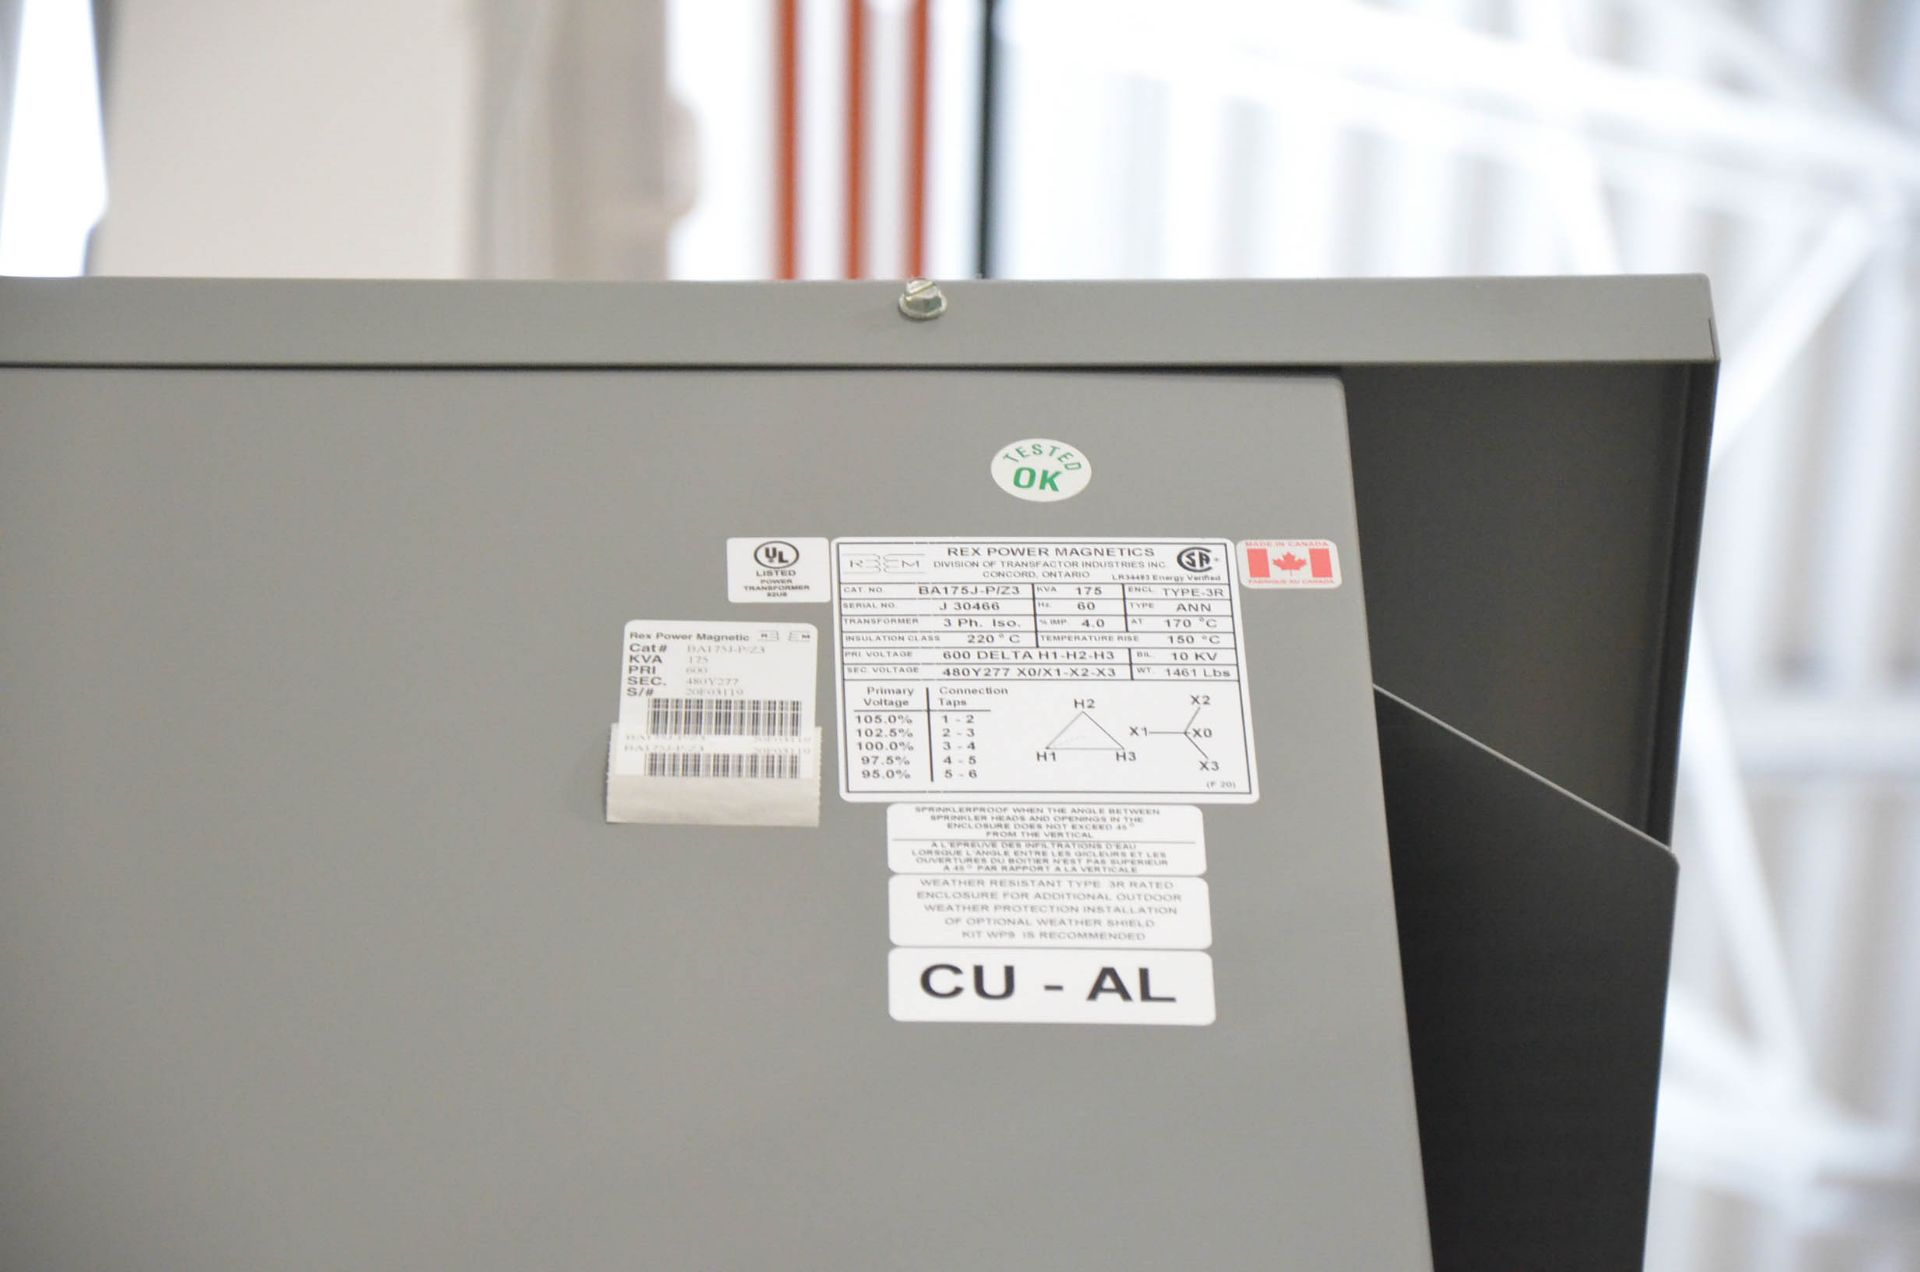 REX 175KVA/600-480V/3PH/60HZ TRANSFORMER (CI) [RIGGING FEES FOR LOT #153 - $50 USD PLUS APPLICABLE - Image 2 of 2